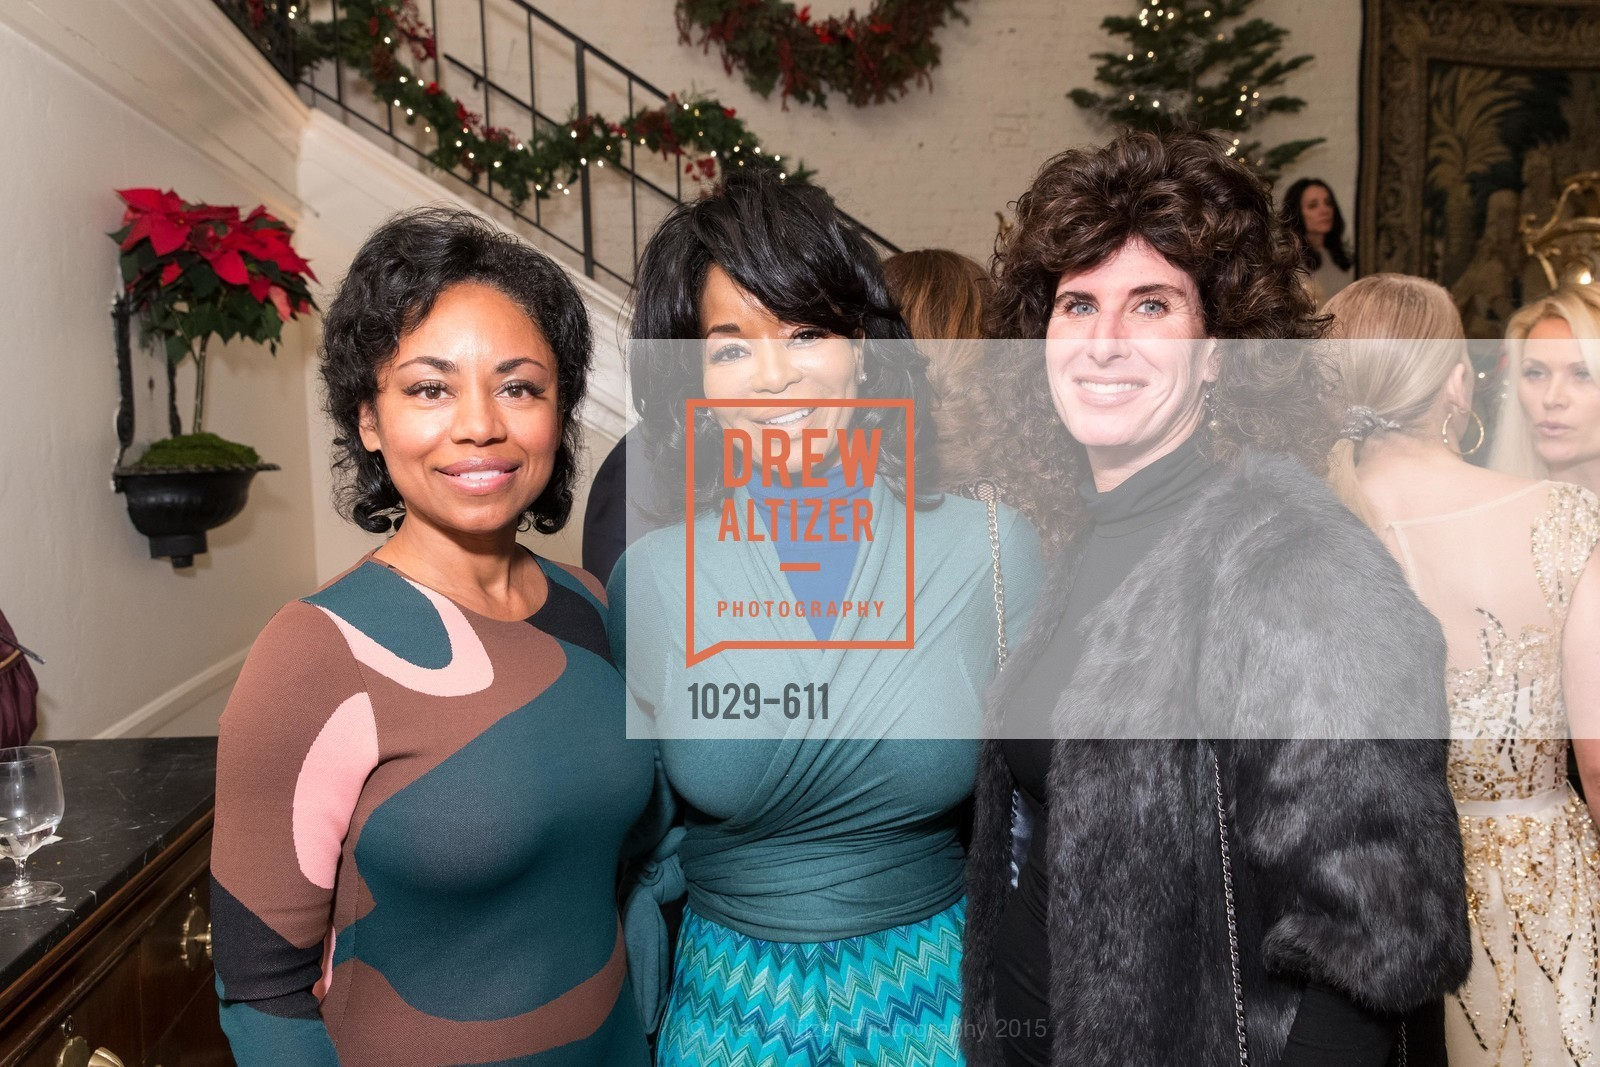 Tanya Powell, Michelle Renee, Jody Thelander, San Francisco Ballet Auxiliary's Gala Launch party hosted by La Perla., VILLA TAVERA. 27 HOTALING PLACE, December 1st, 2015,Drew Altizer, Drew Altizer Photography, full-service agency, private events, San Francisco photographer, photographer california